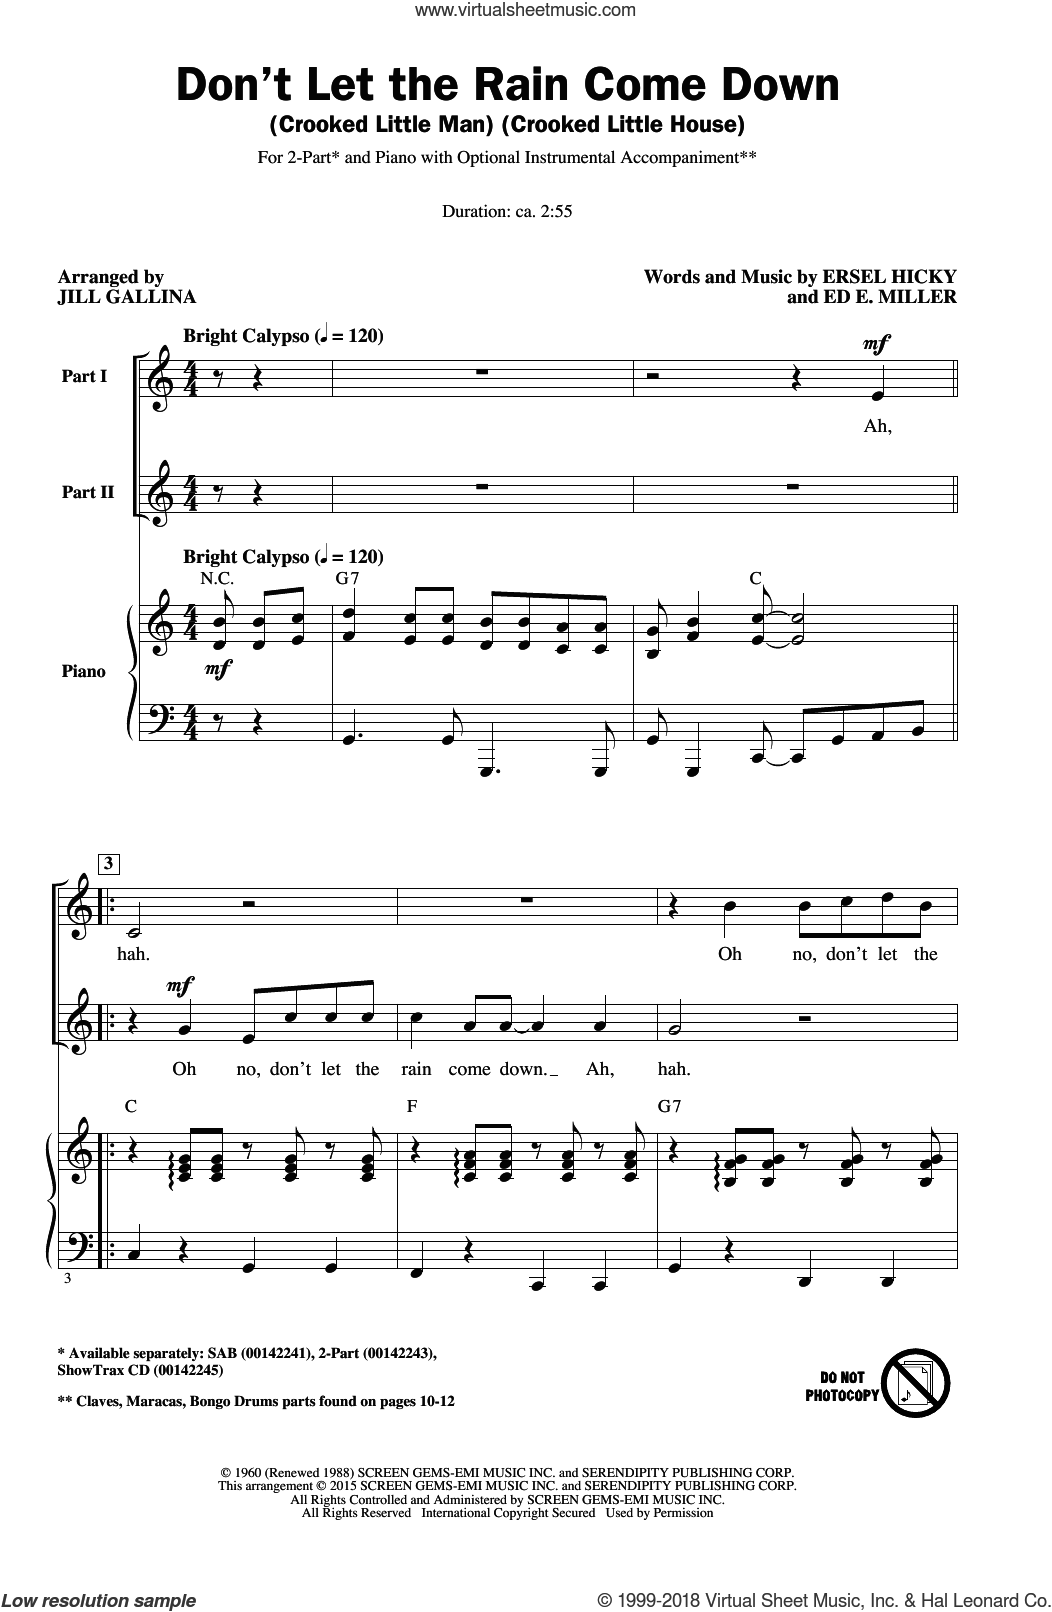 Don't Let The Rain Come Down (Crooked Little Man) (Crooked Little House) sheet music for choir (2-Part) by Jill Gallina, Ed. E. Miller, Ersel Hicky and Serendipity Singers, intermediate duet. Score Image Preview.